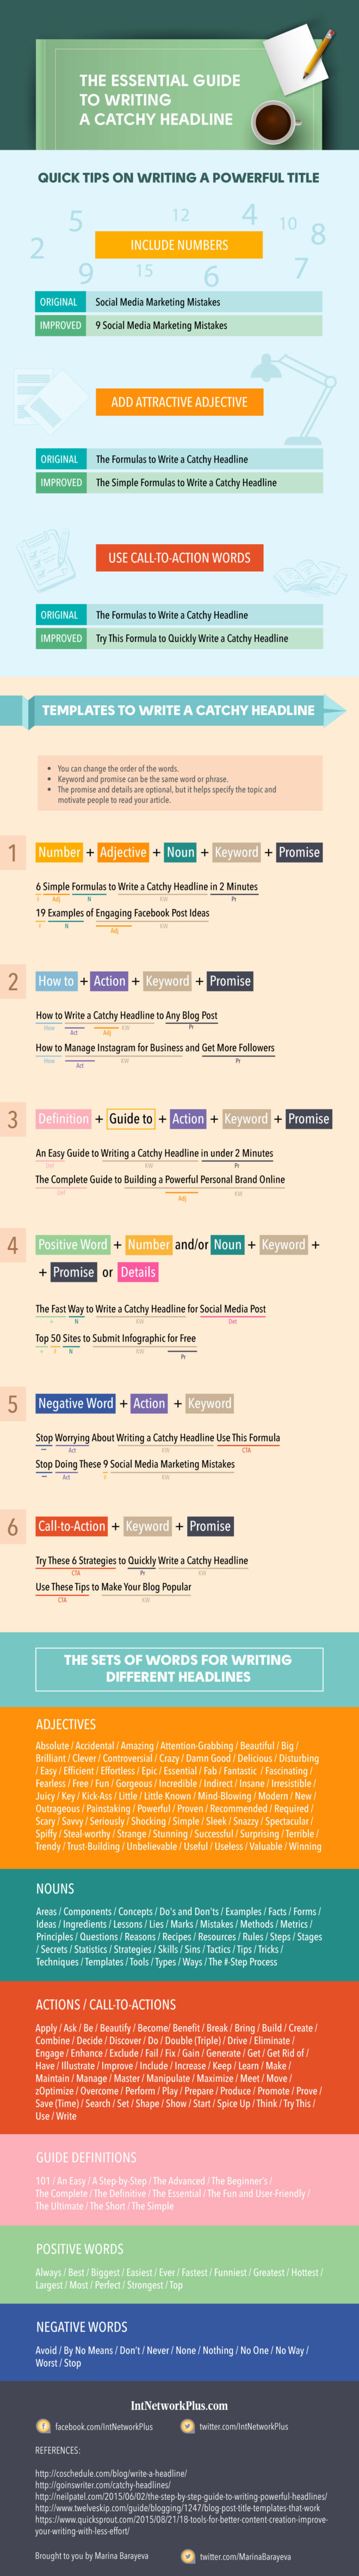 infographic-essential-guide-writing-catchy-headline